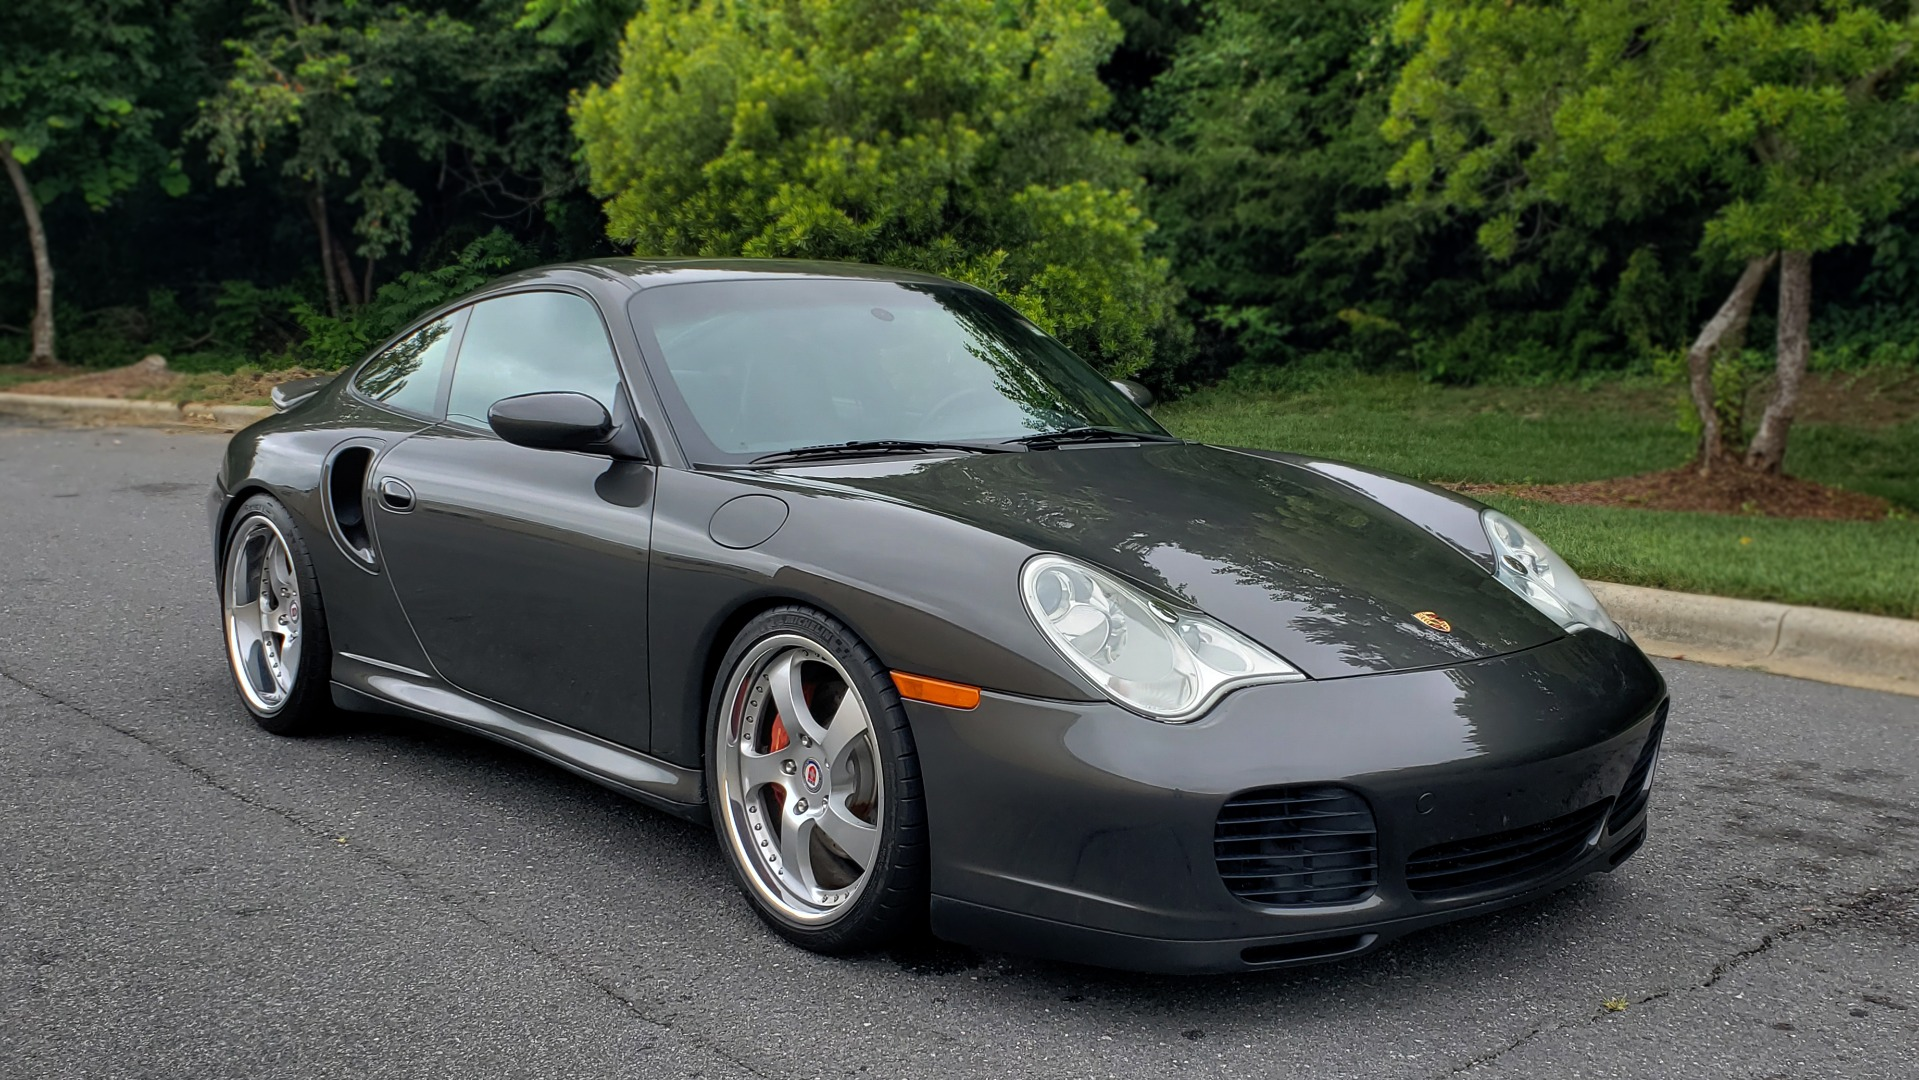 Used 2002 Porsche 911 CARRERA TURBO / 6-SPD MAN / ALPINE / BOSE / PERF UPGRADES for sale $53,995 at Formula Imports in Charlotte NC 28227 6